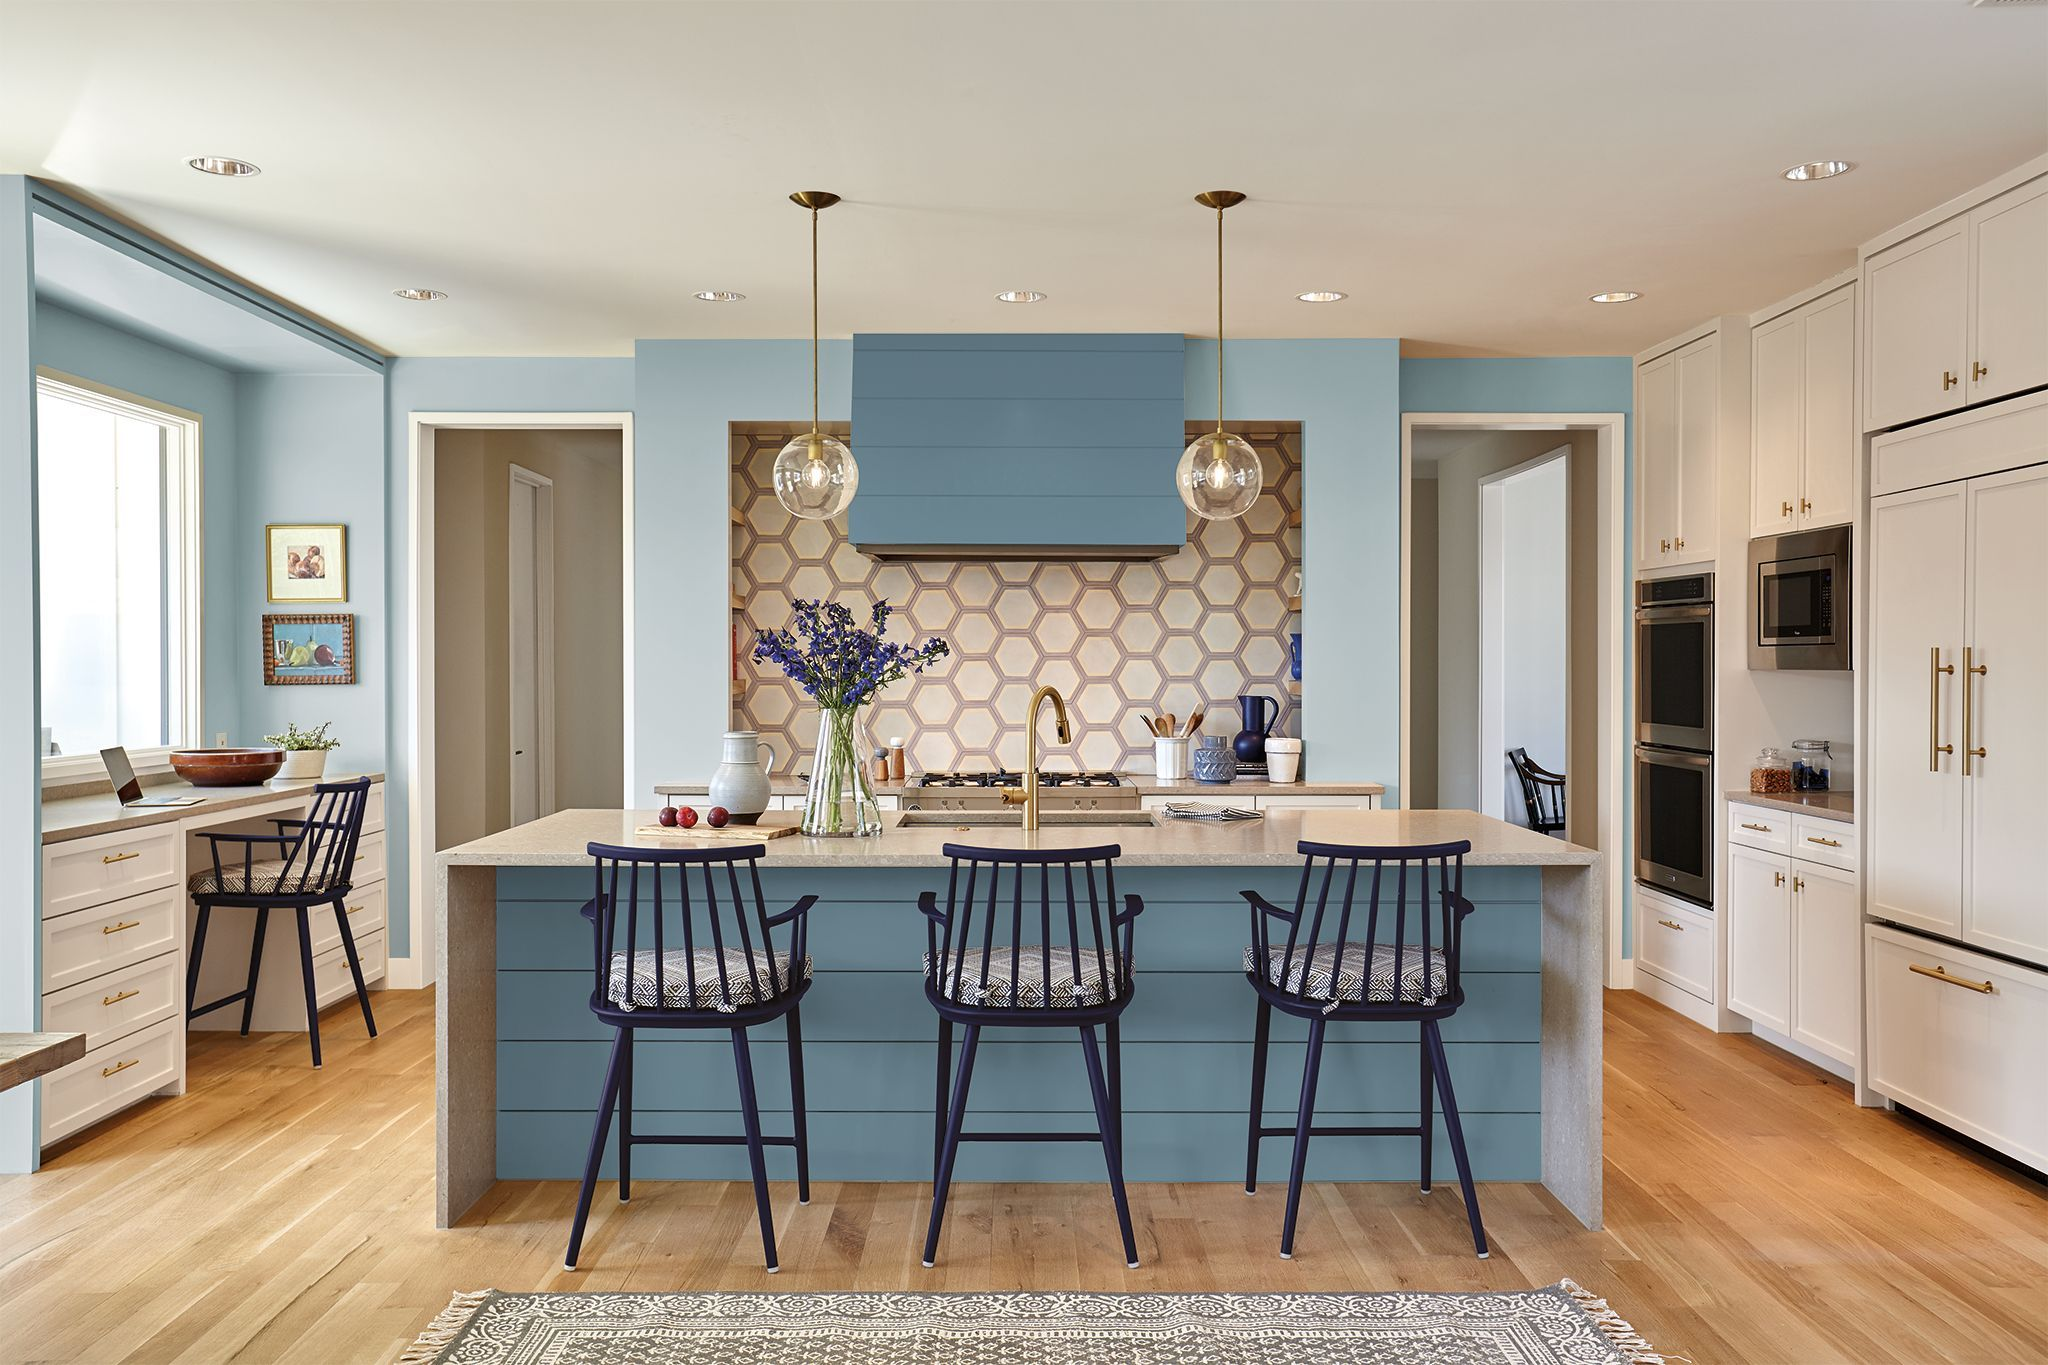 behr paint 2019 color of the year & 40 Blue Kitchen Ideas - Lovely Ways to Use Blue Cabinets and Decor ...